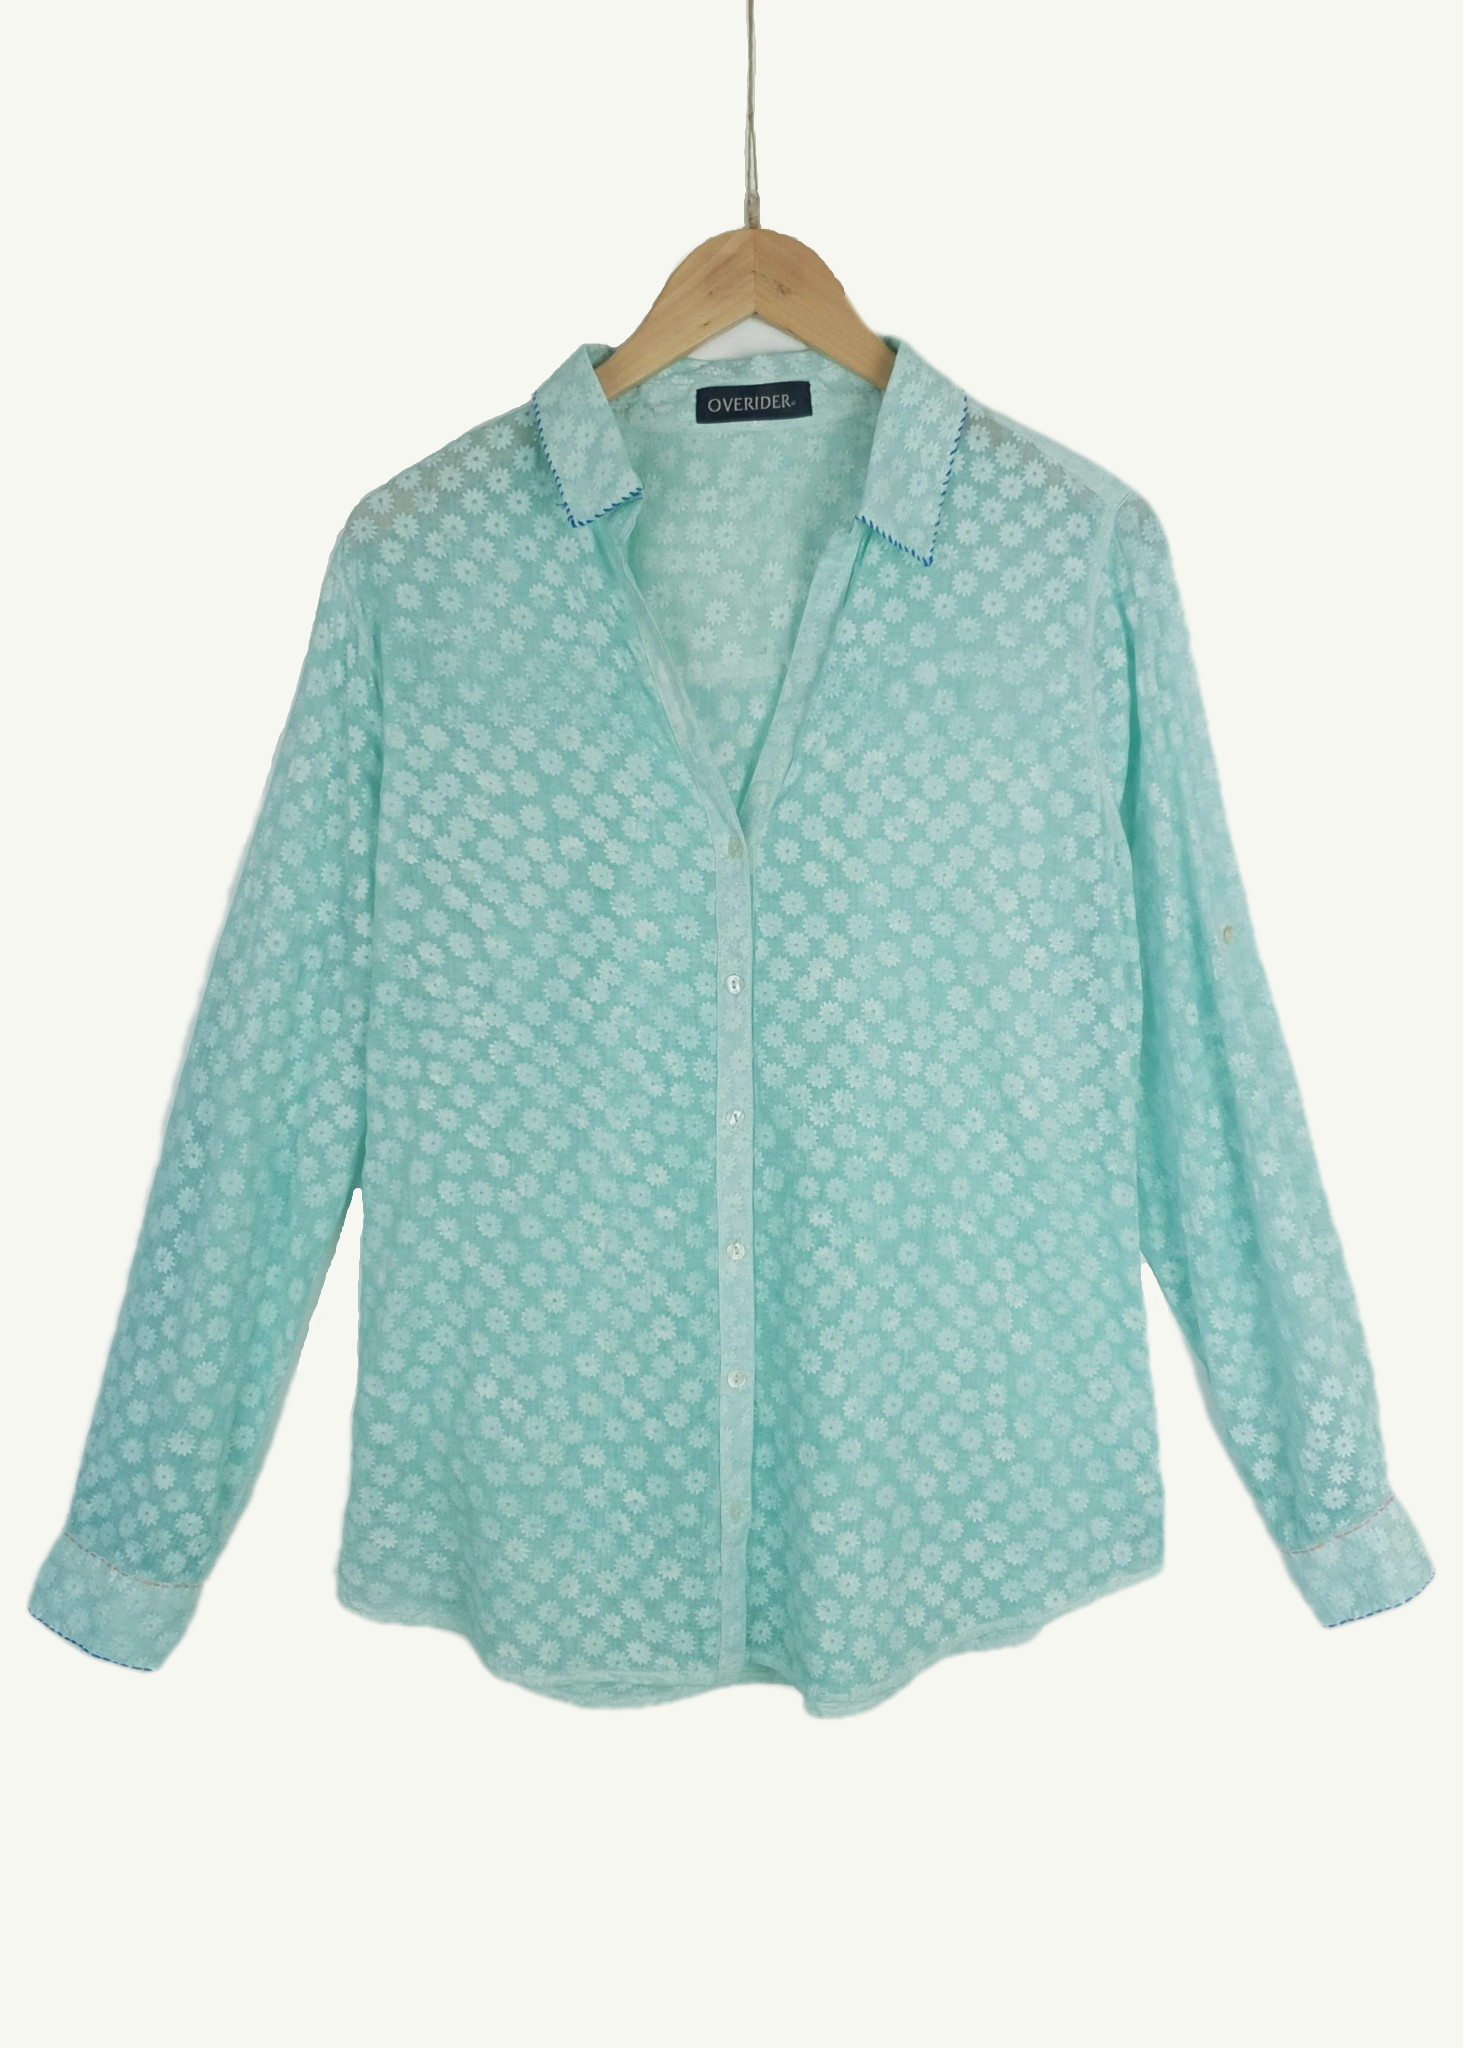 TALITA - Summer Patterned Shirt - Surf Blue